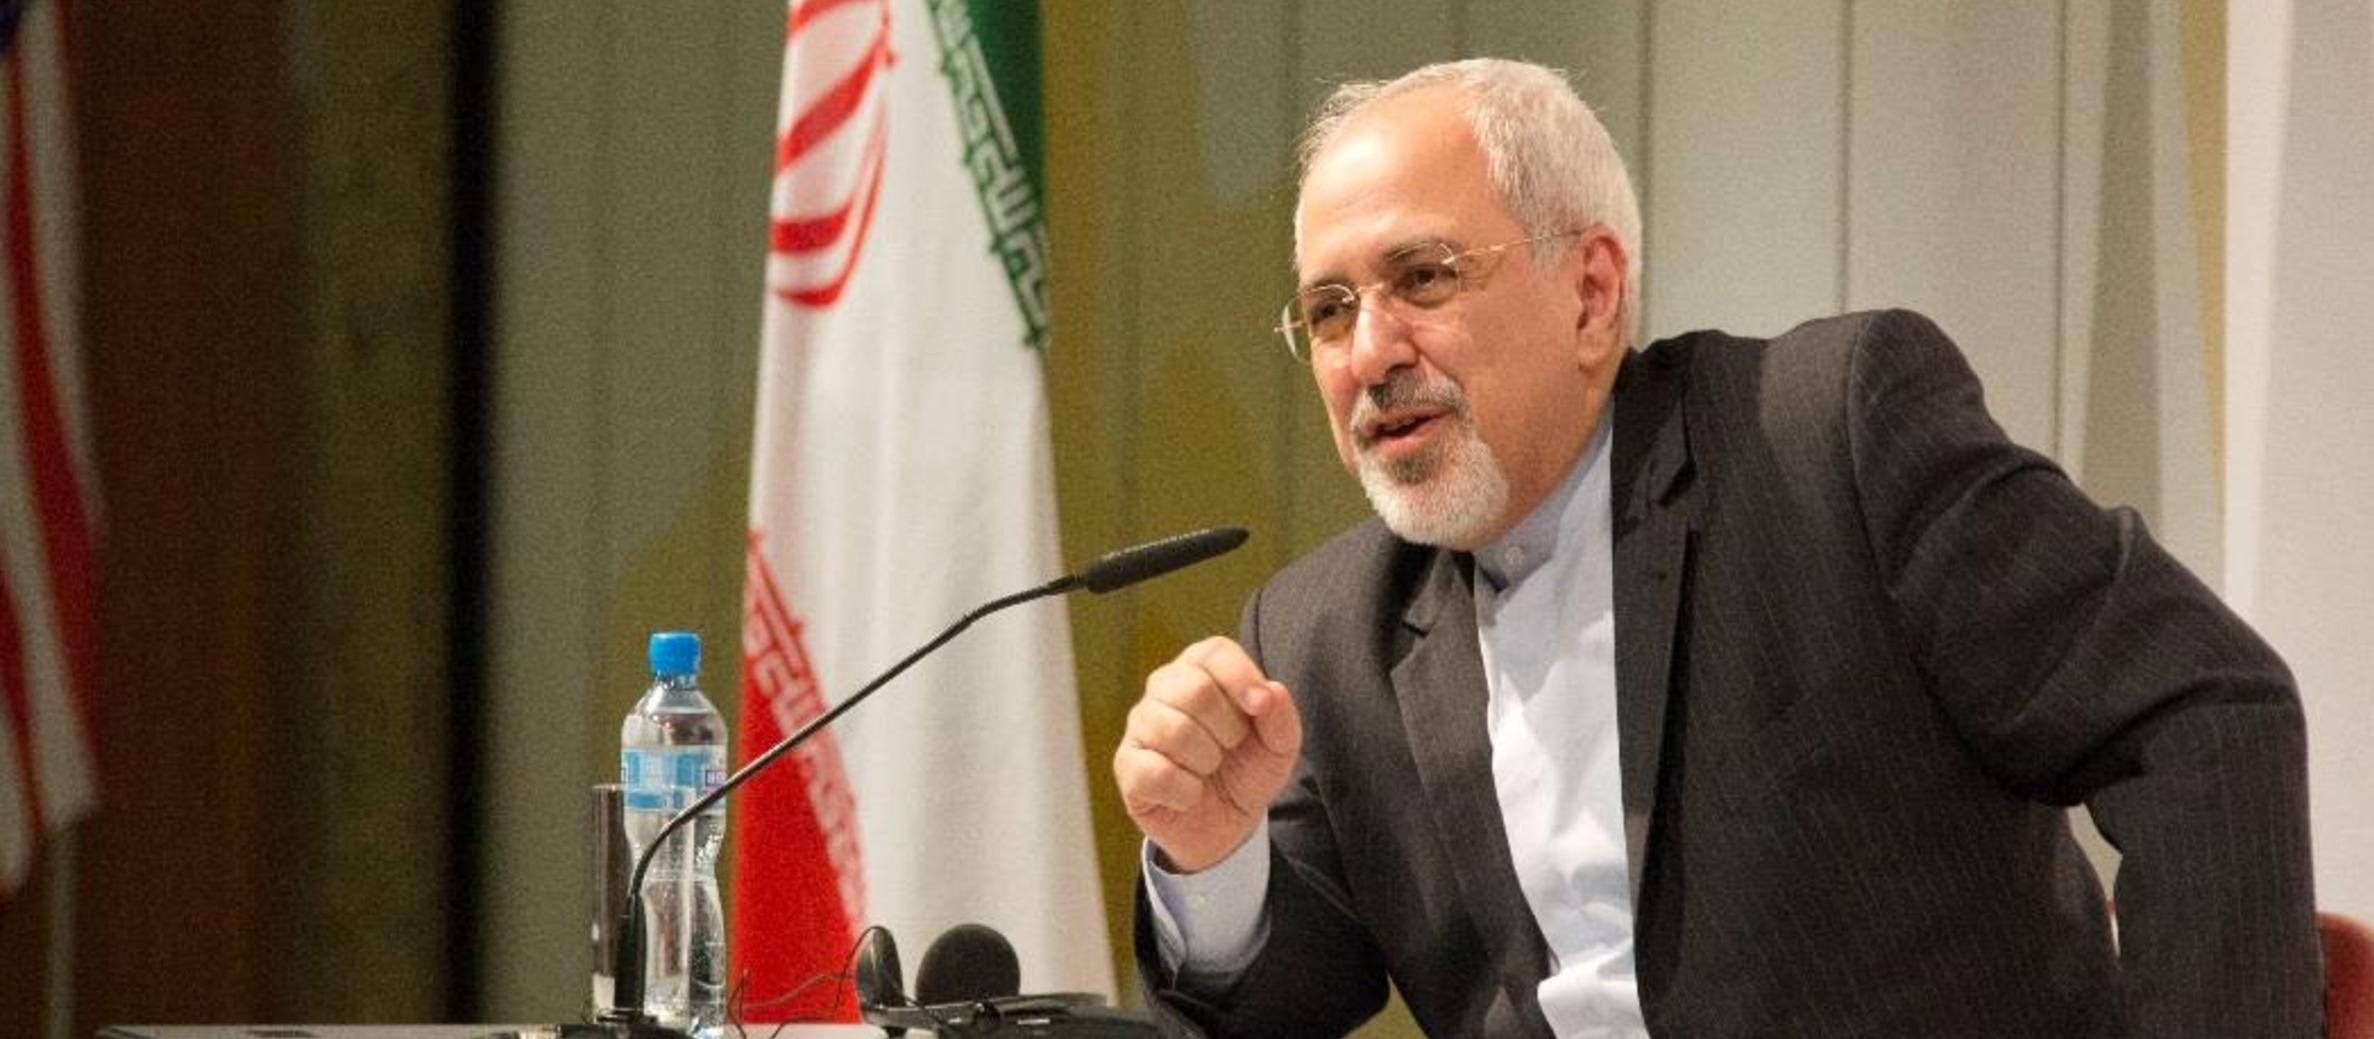 Iranian Foreign Minister's visit to London is an 'insult to British values'